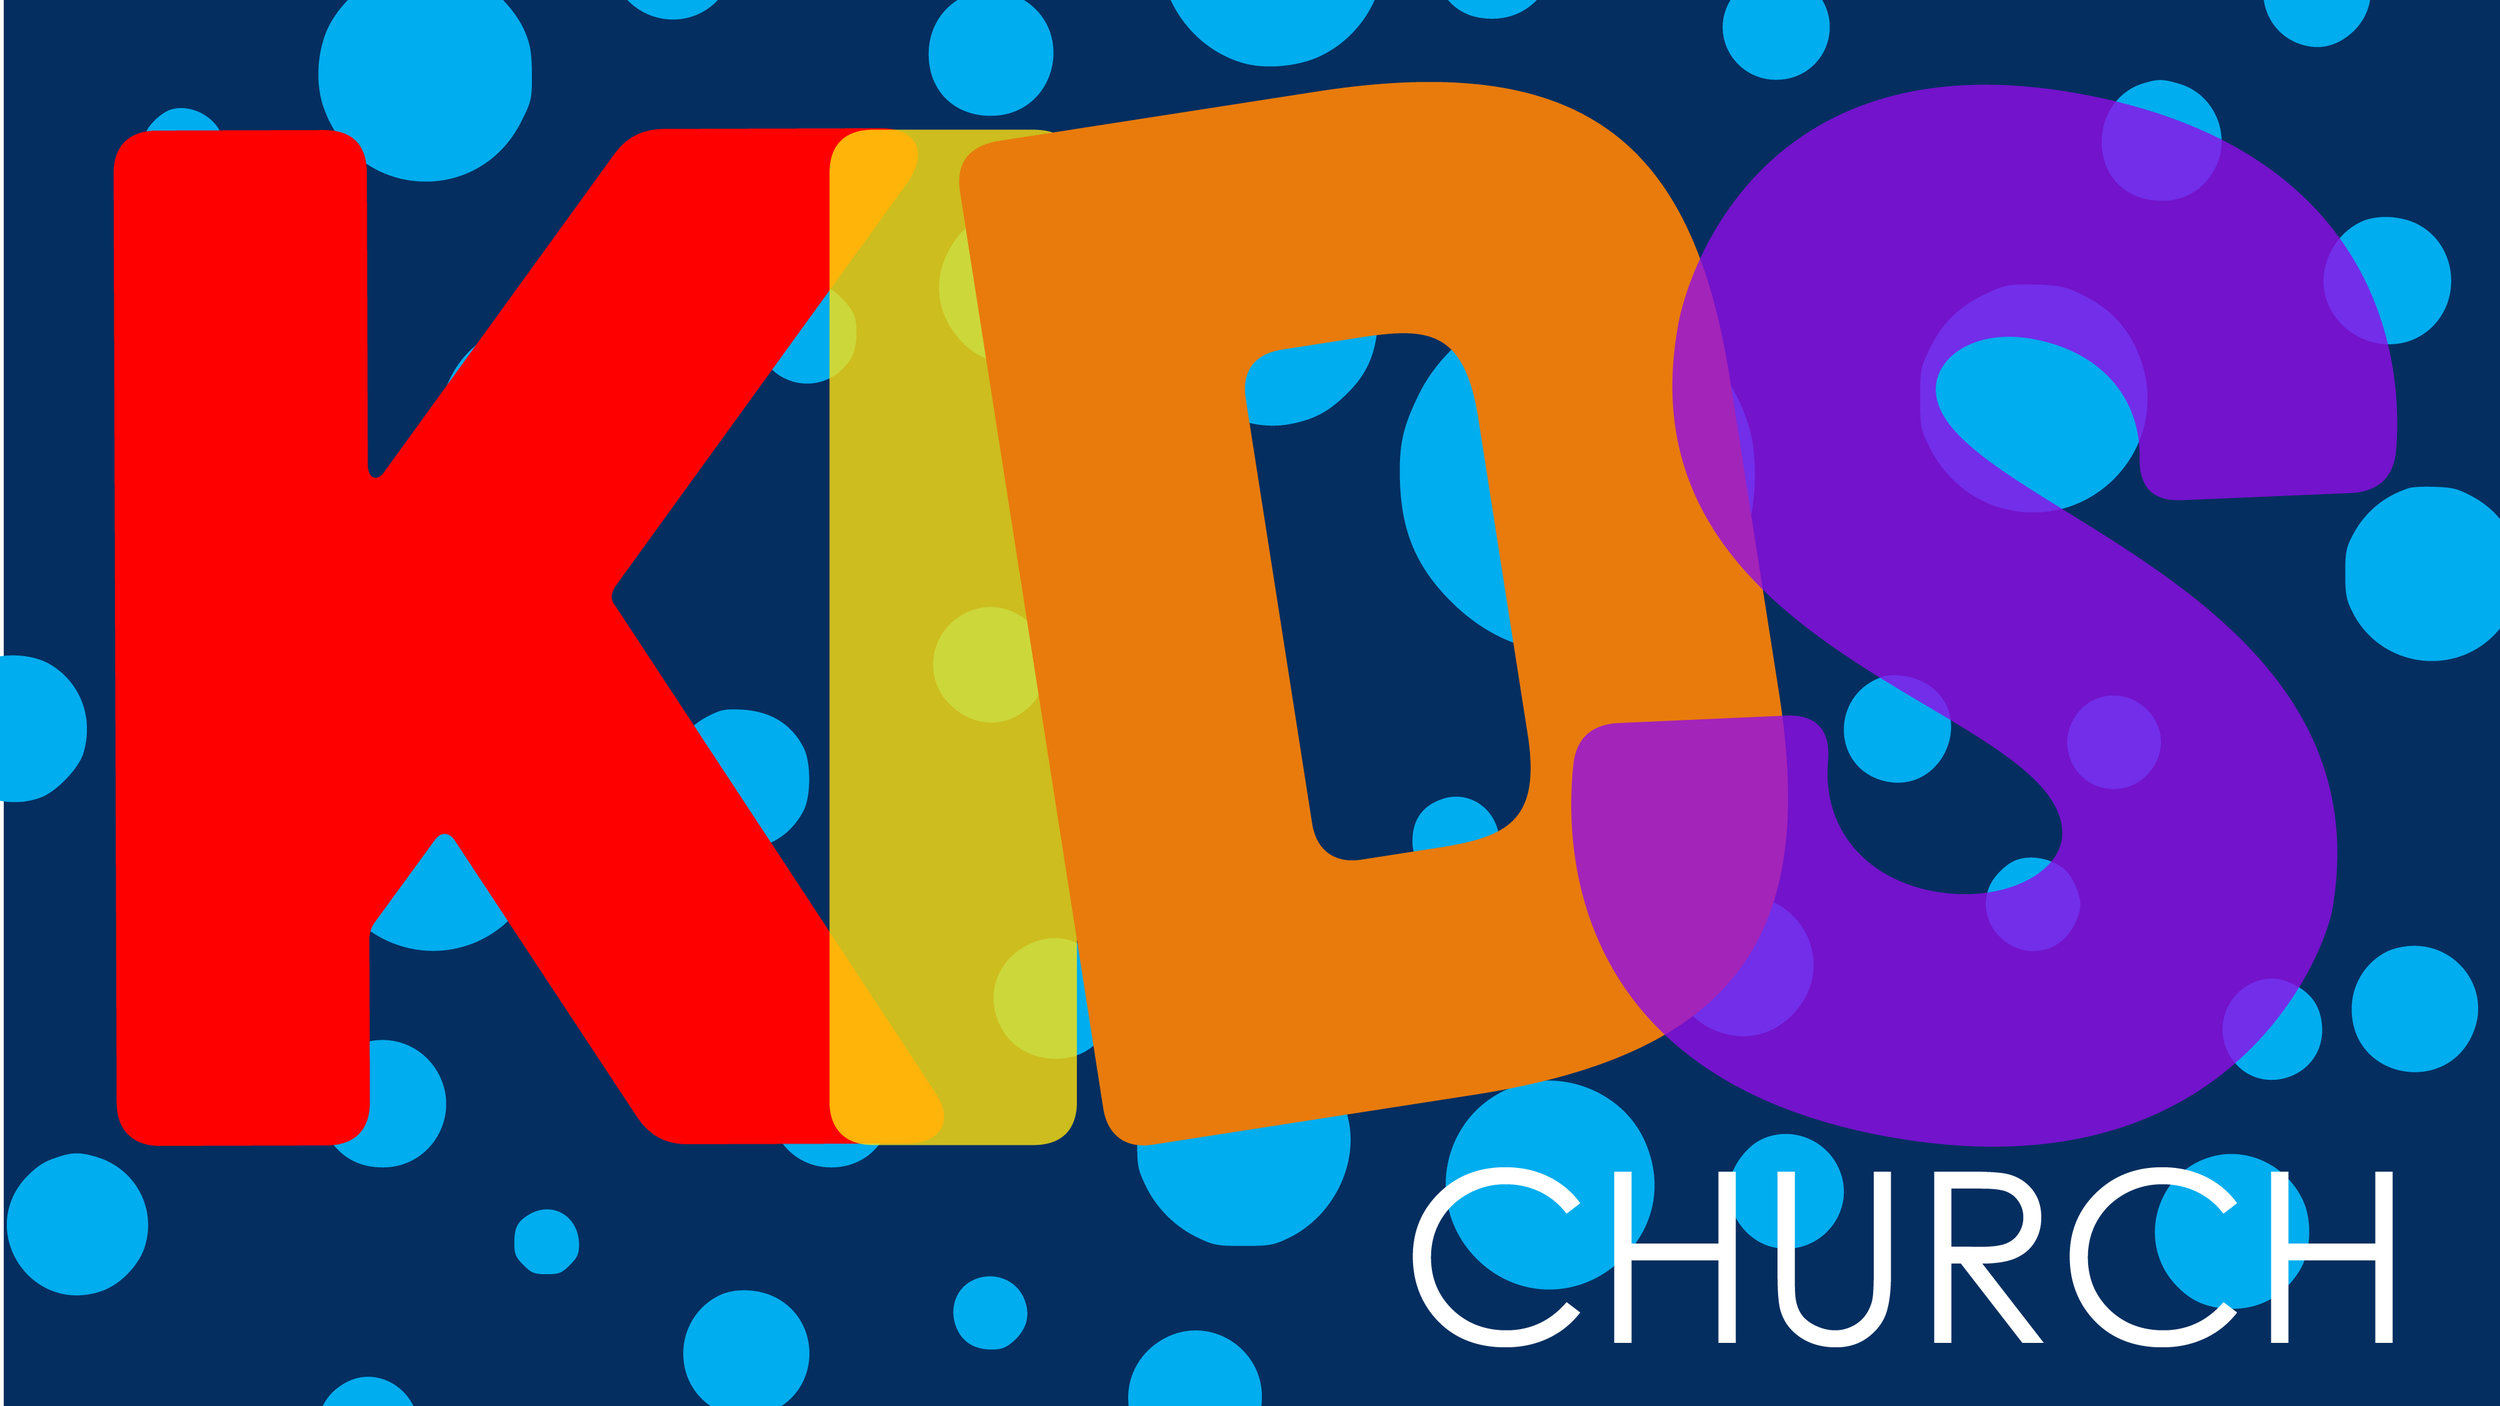 KIDS Church - We are dedicated to helping children know and experience the love of Jesus. KIDS Church is available during all services.